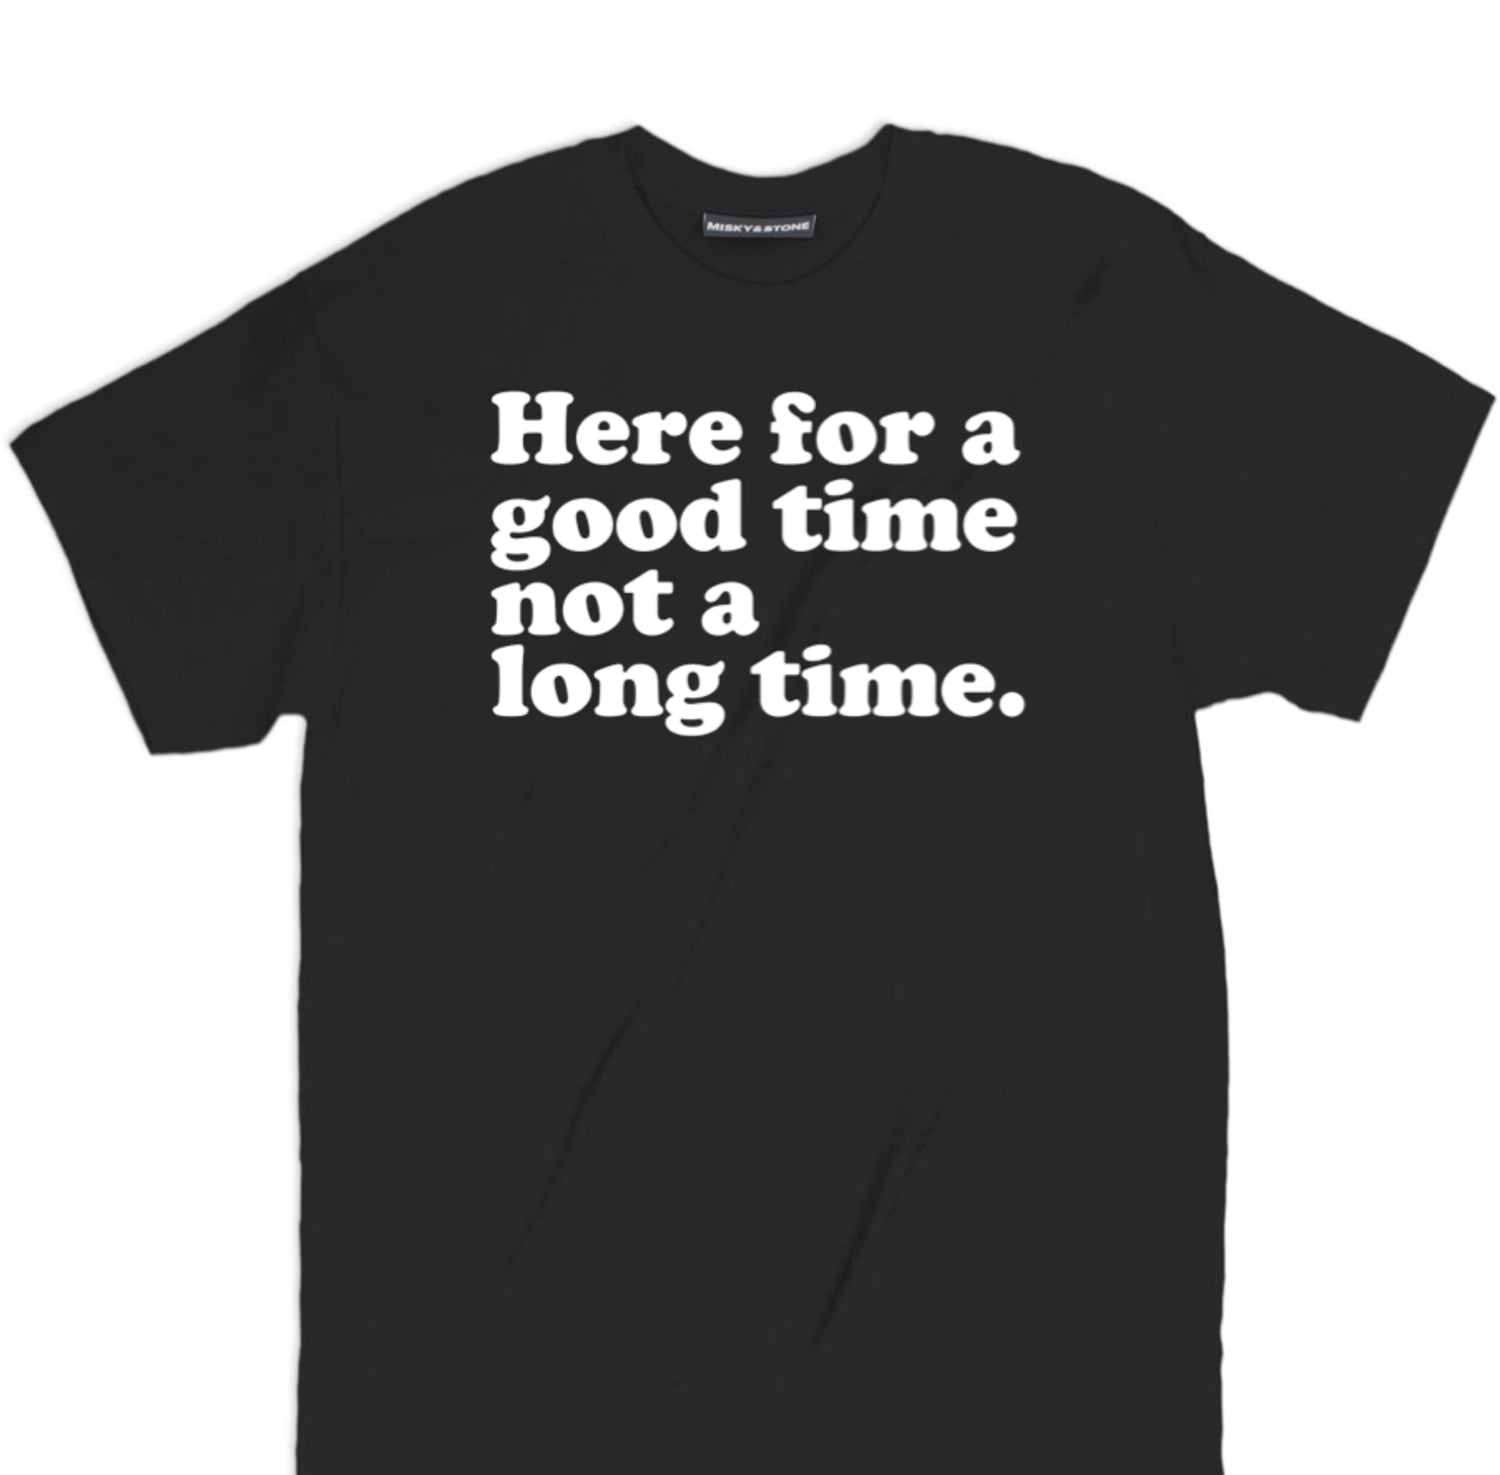 Here For A Good Time T Shirt, Here For A Good Time Tee, good times t shirt, funny t shirts, funny graphic tees, awesome shirts, hilarious shirts, cool t shirts, funny shirts, funny tee shirts, novelty t shirts, awesome t shirts, cool tee shirts, funny tees, crazy t shirts, funny graphic tees, funny tshirt sayings, pun t shirts, awesome shirts, funny tshirt quotes,  tshirt sayings, pun t shirts, awesome shirts